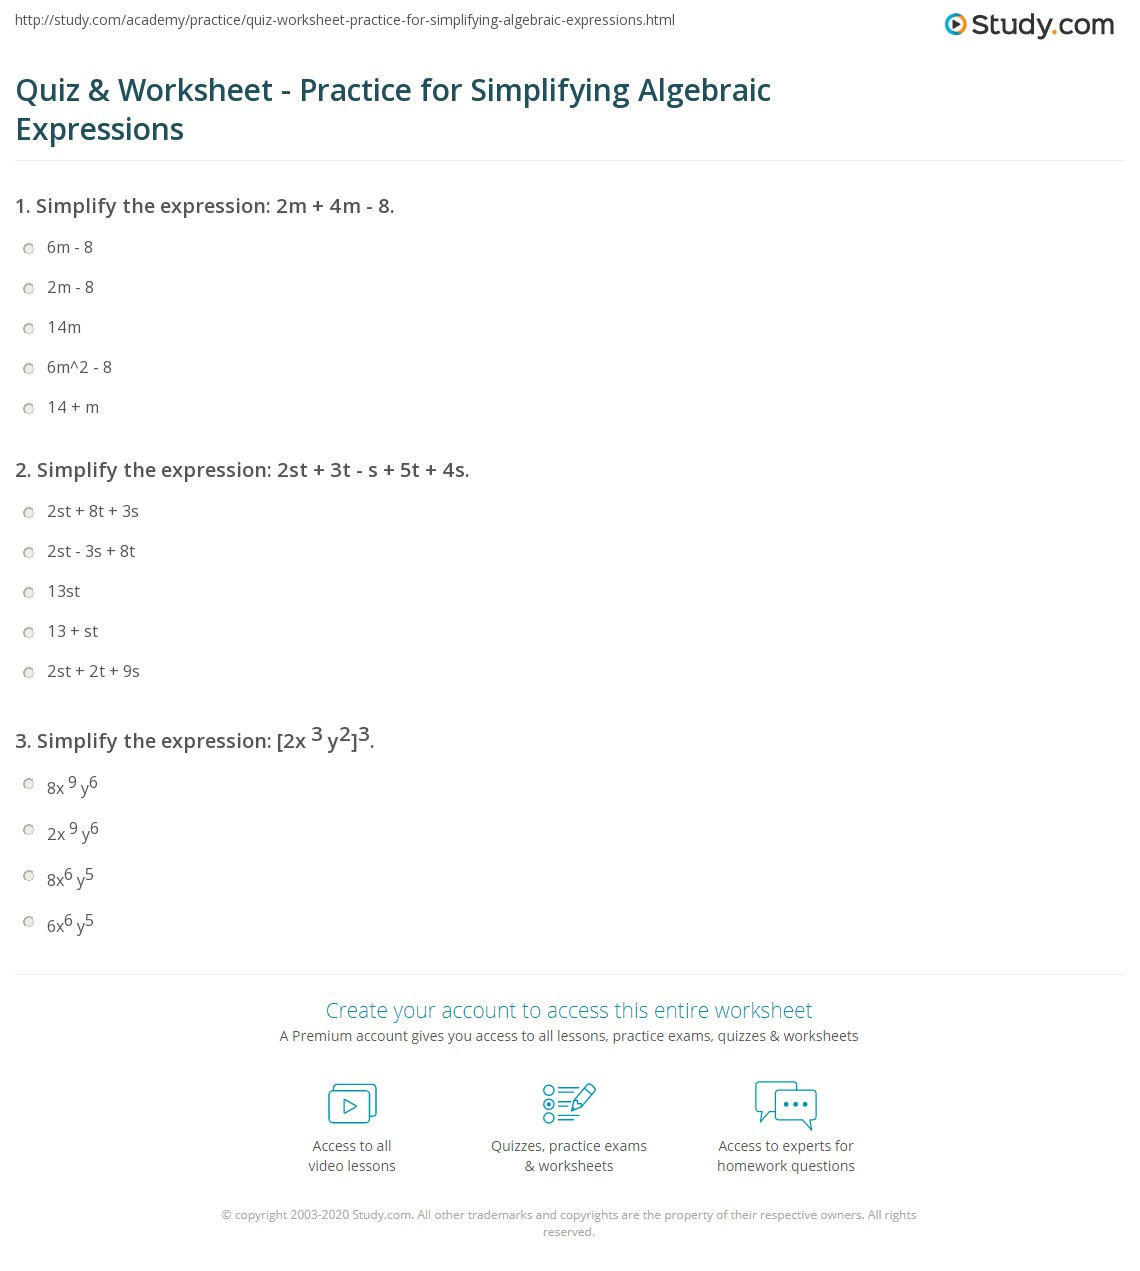 Worksheet Simplify Algebraic Expressions Worksheet quiz worksheet practice for simplifying algebraic expressions print worksheet